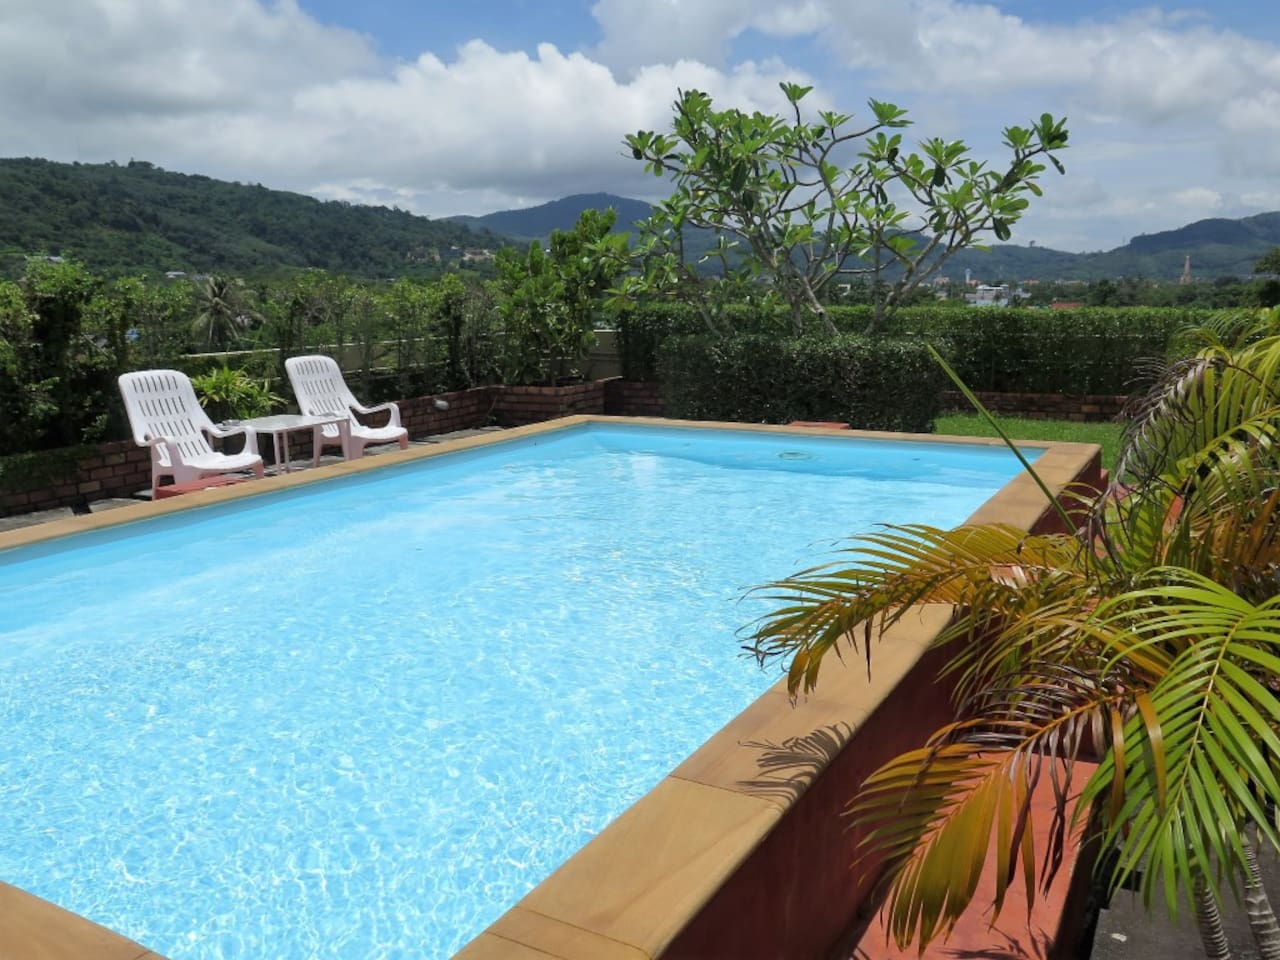 Rooftop pool with views of the Big Buddha